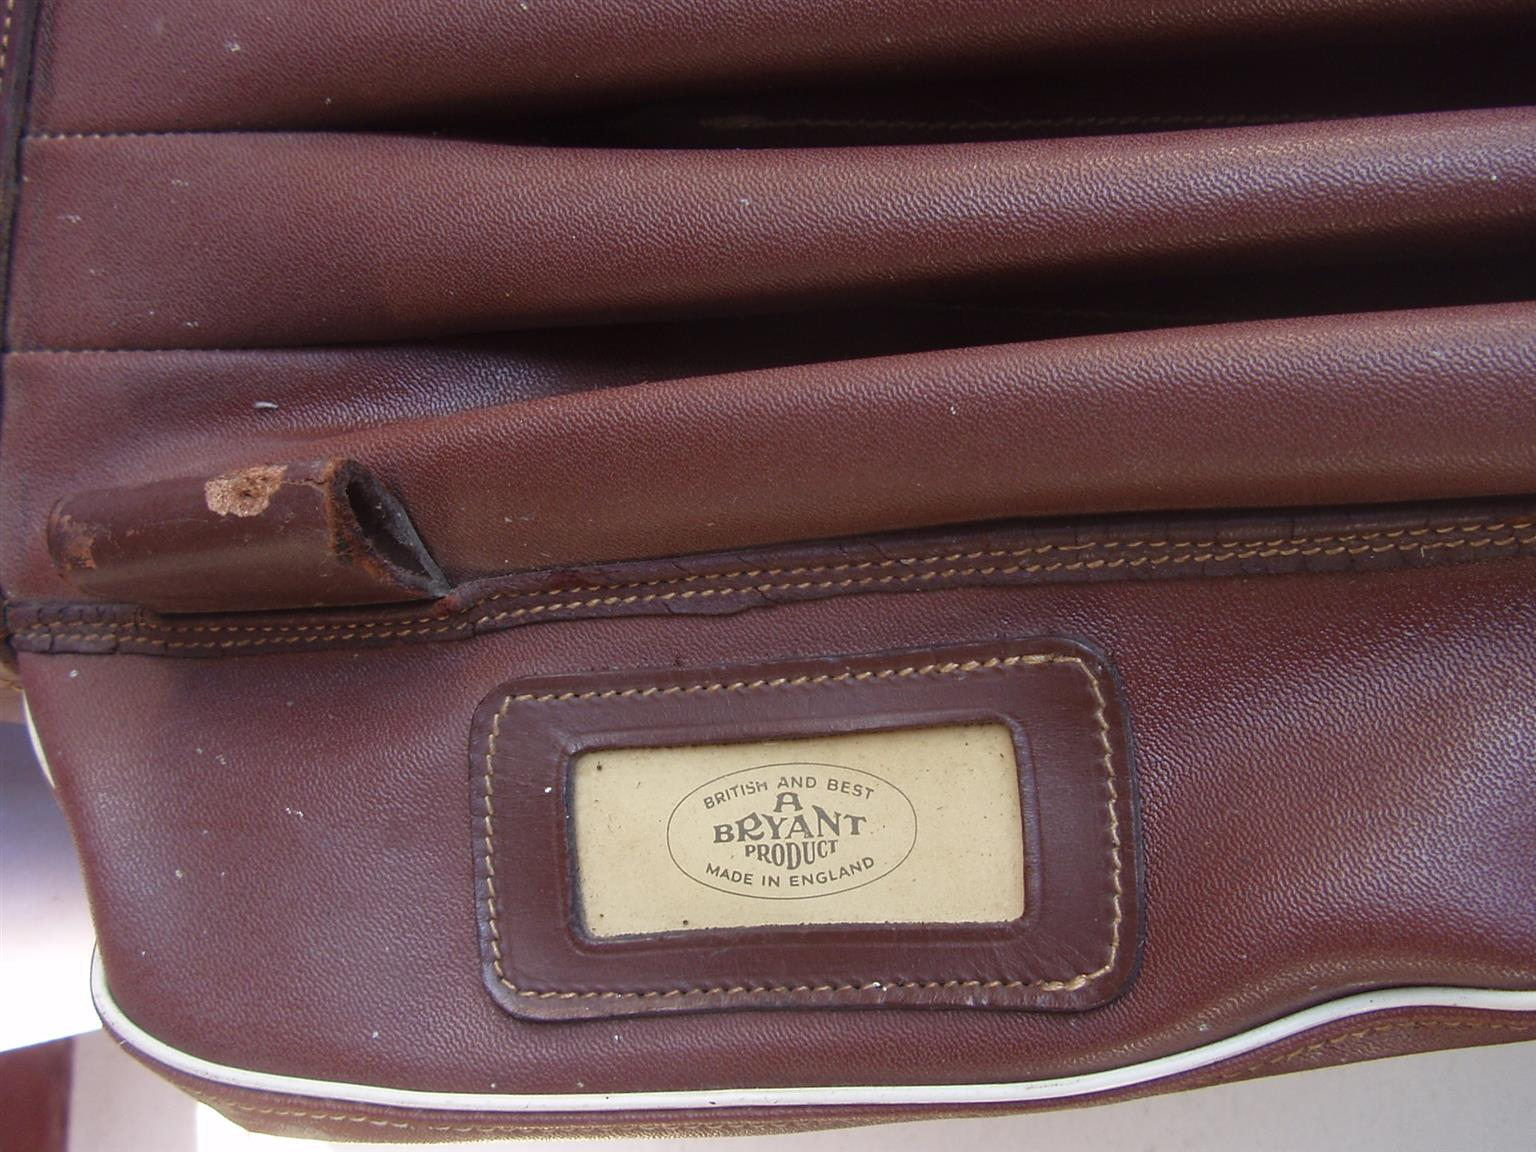 Bryant 'The Birkdale' Leather Golf Bag